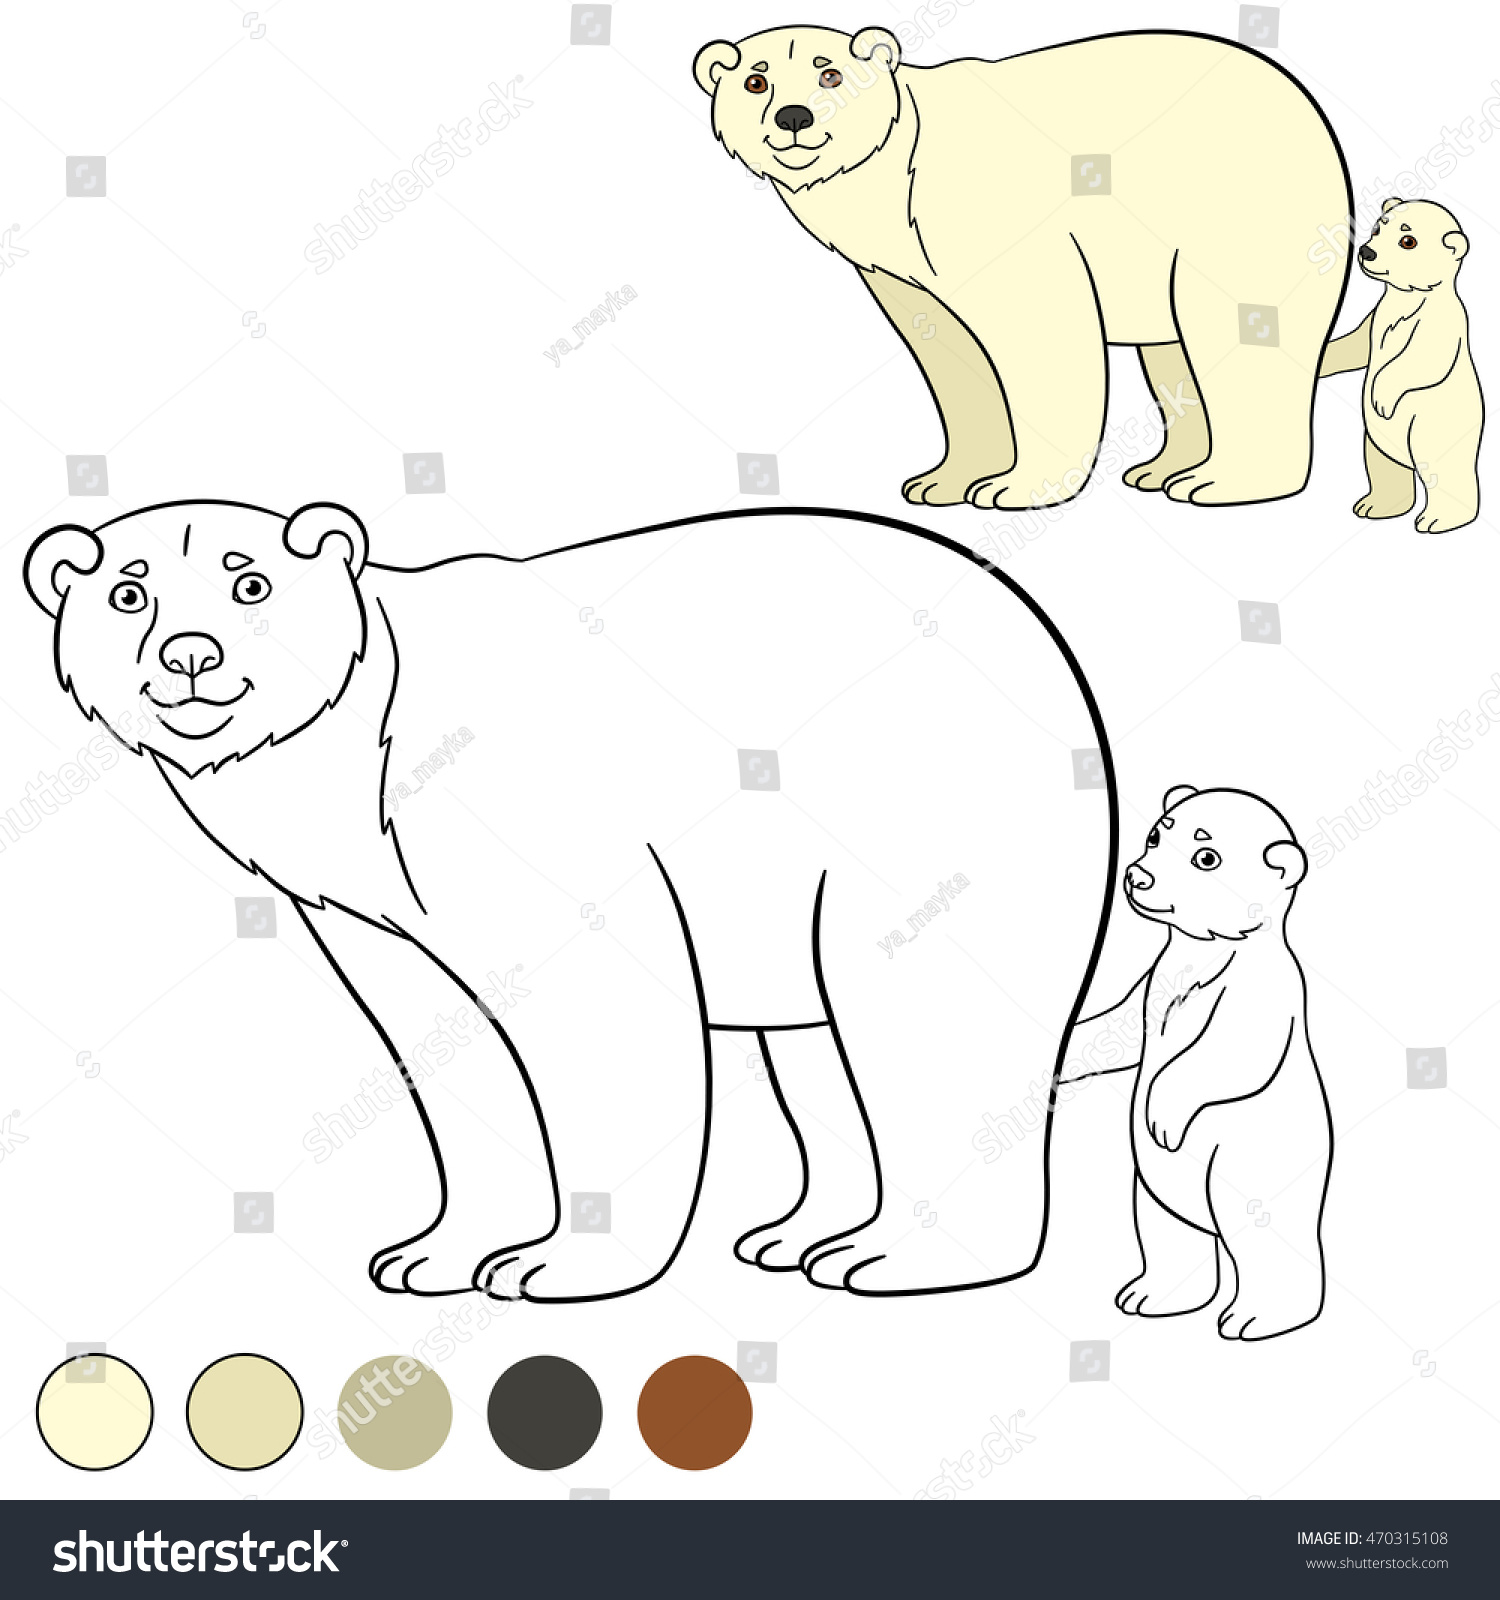 Coloring page. Cute polar bear stands and smiles. | EZ Canvas